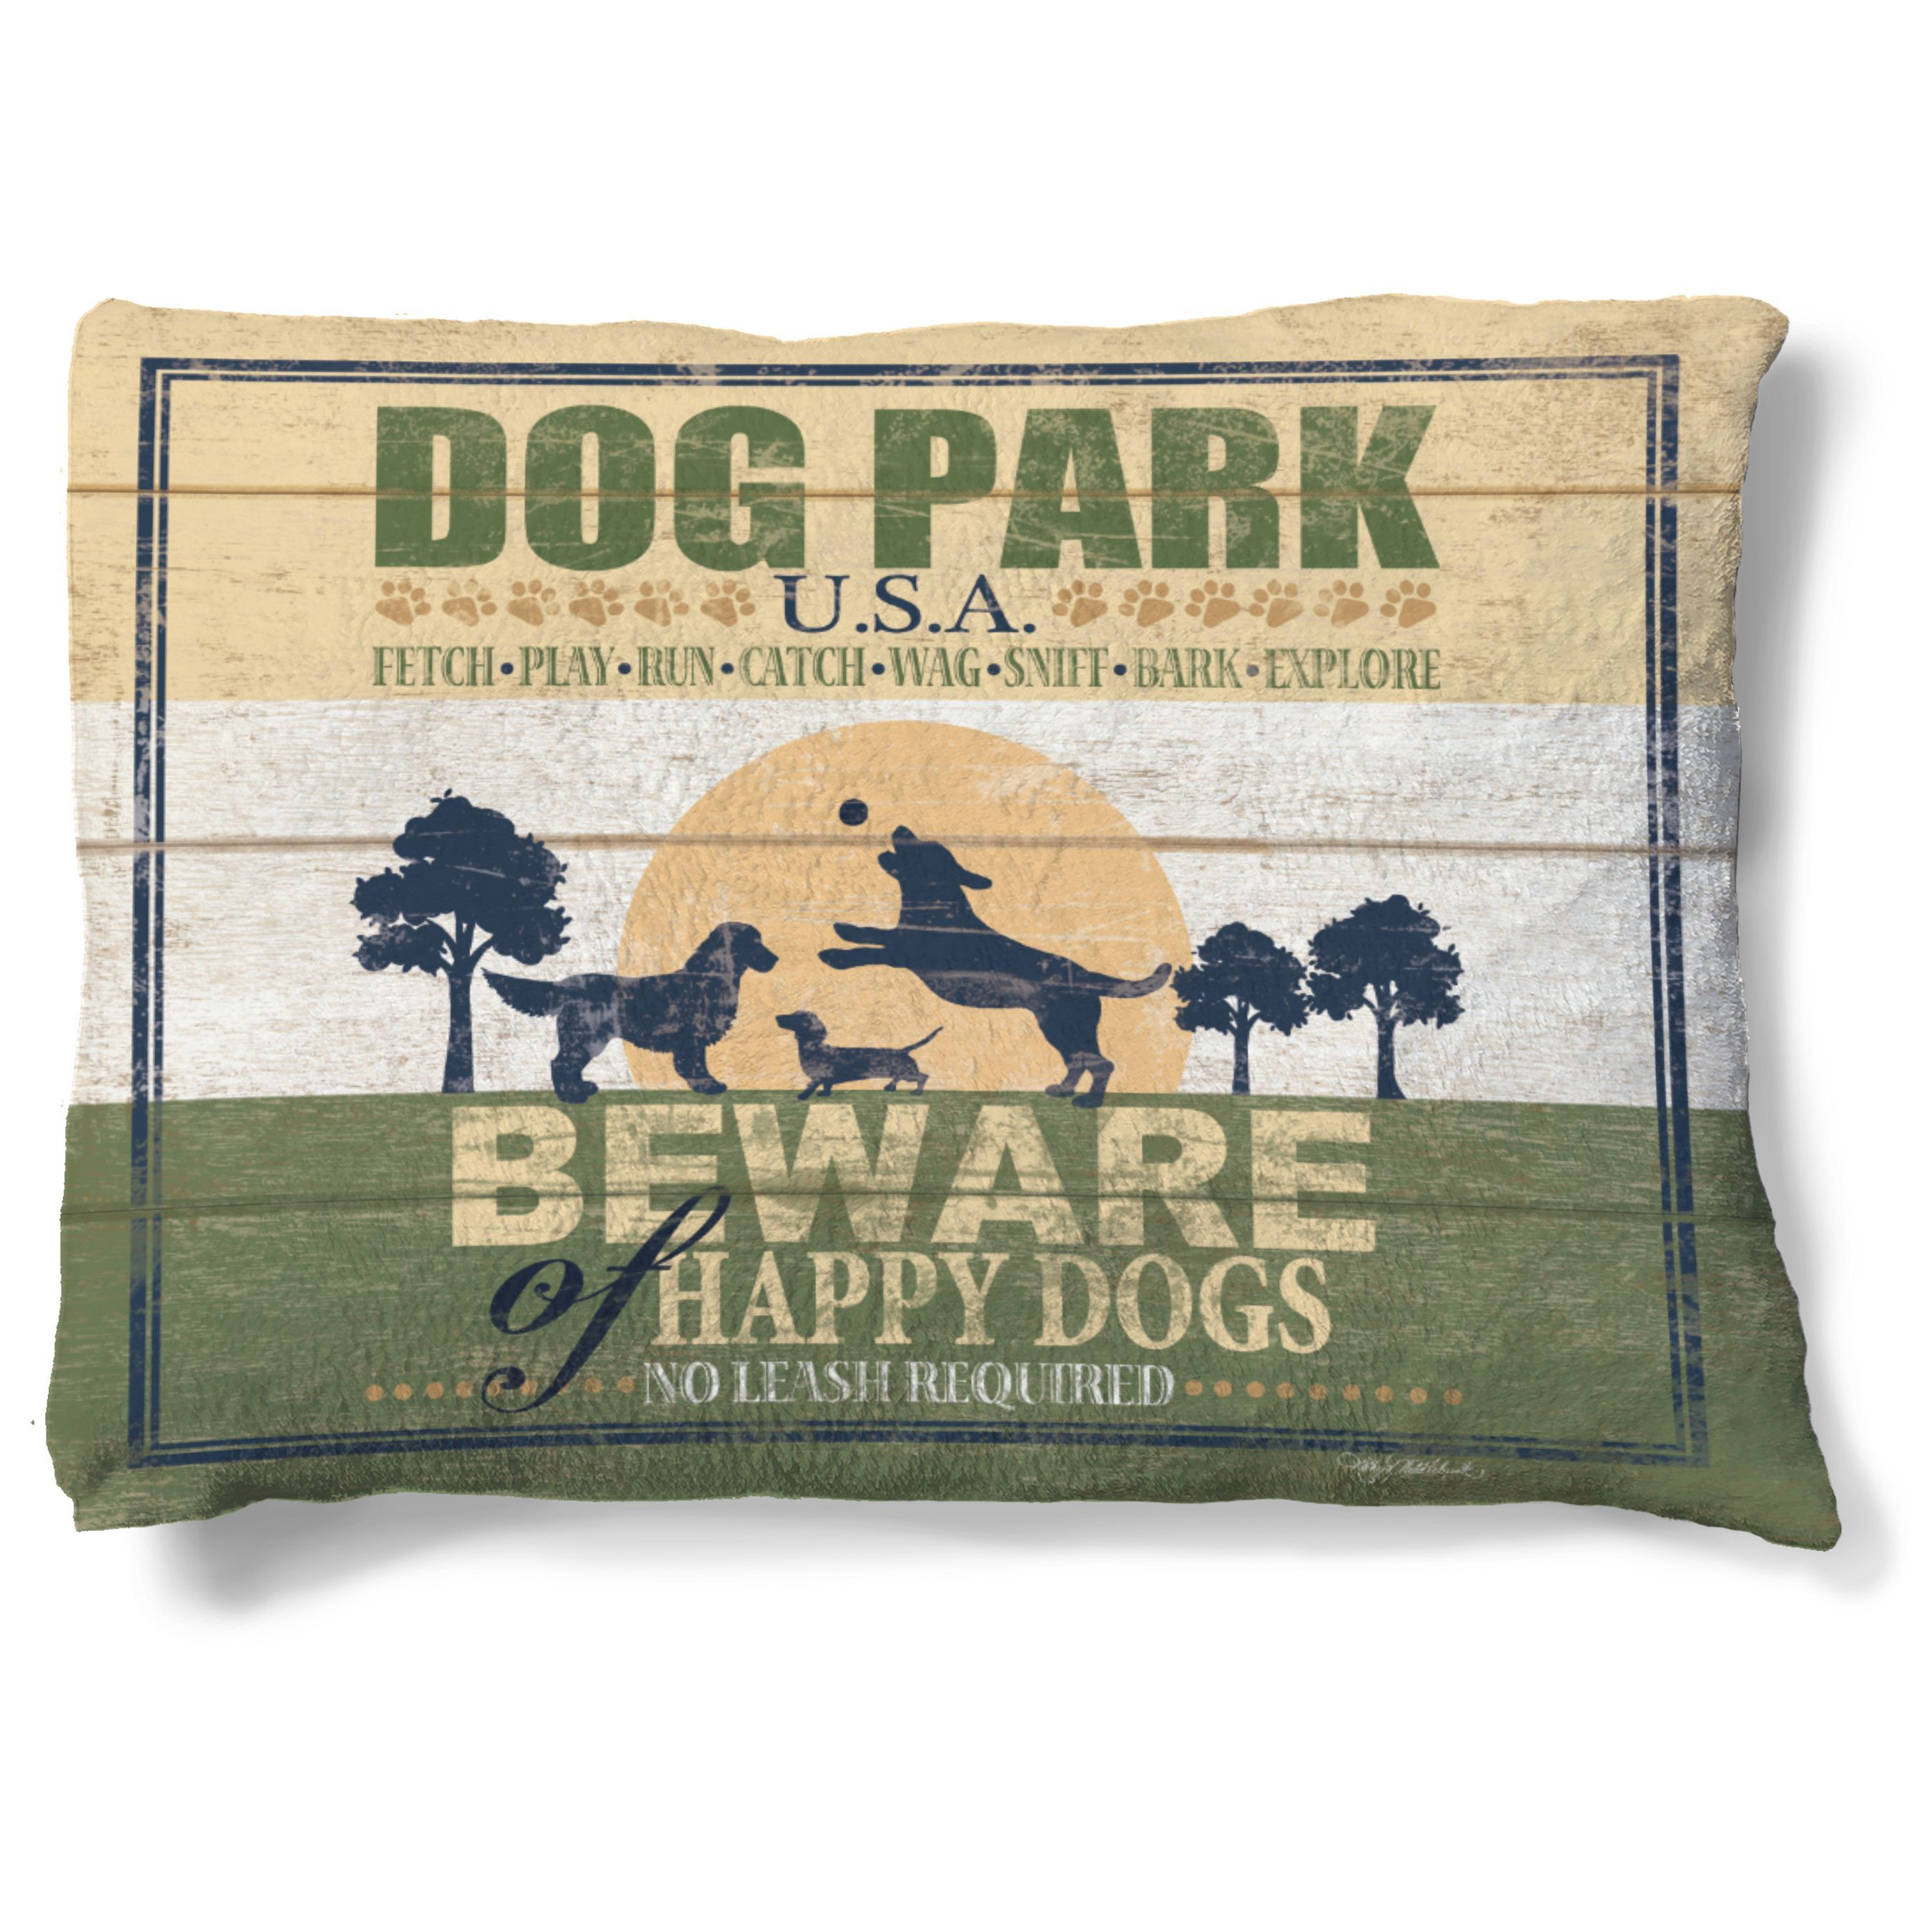 Show your furry family member how much you care when you designate this plush fleece bed as his special sleeping place. Perfectly sized for a medium breed's body, this washable and durable dog park-th